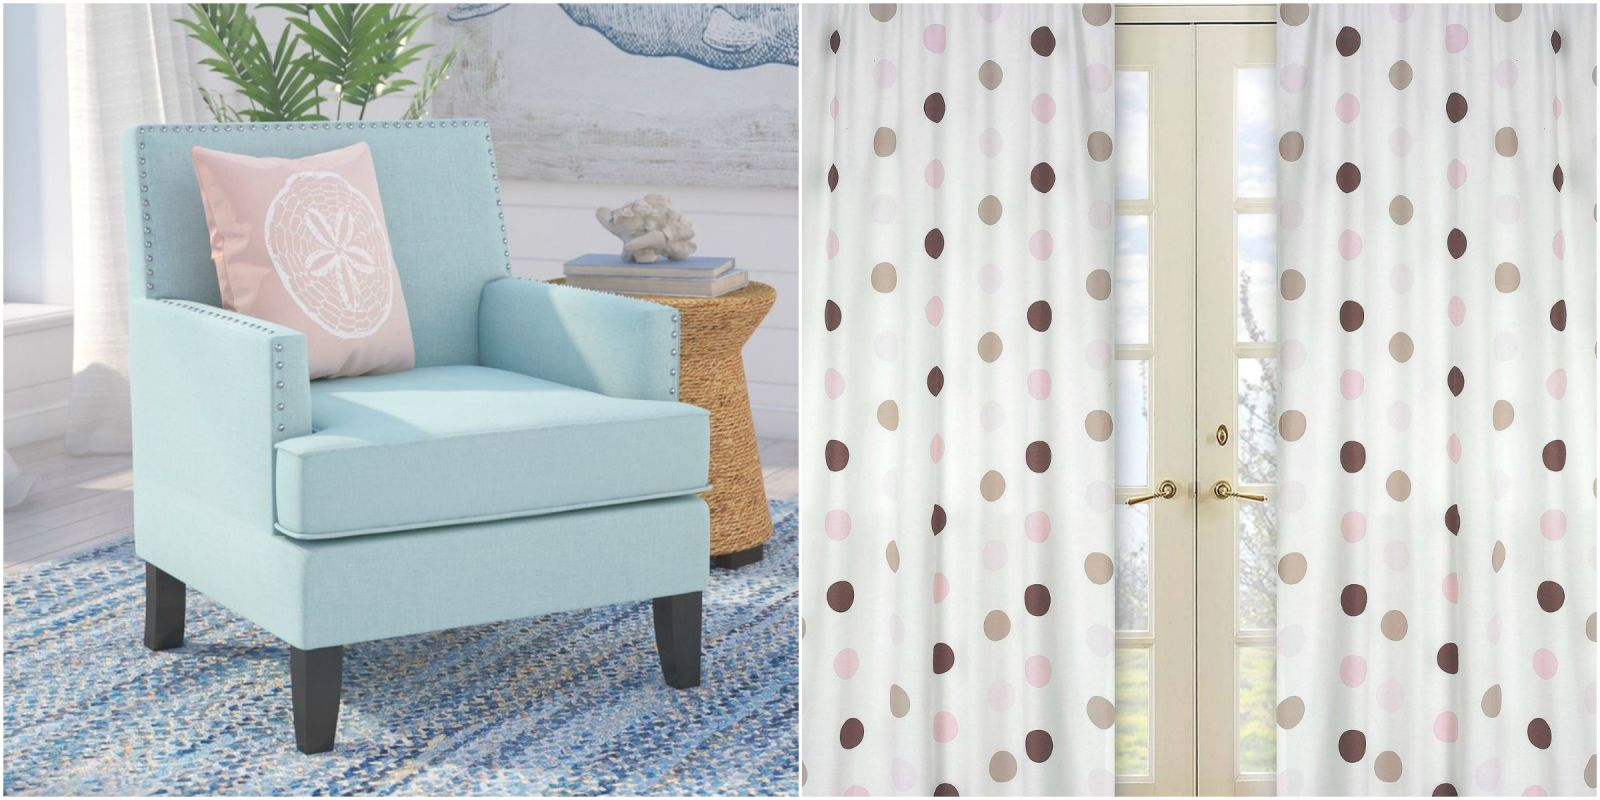 Home products company decorating ideas news amp media download contact - Pink